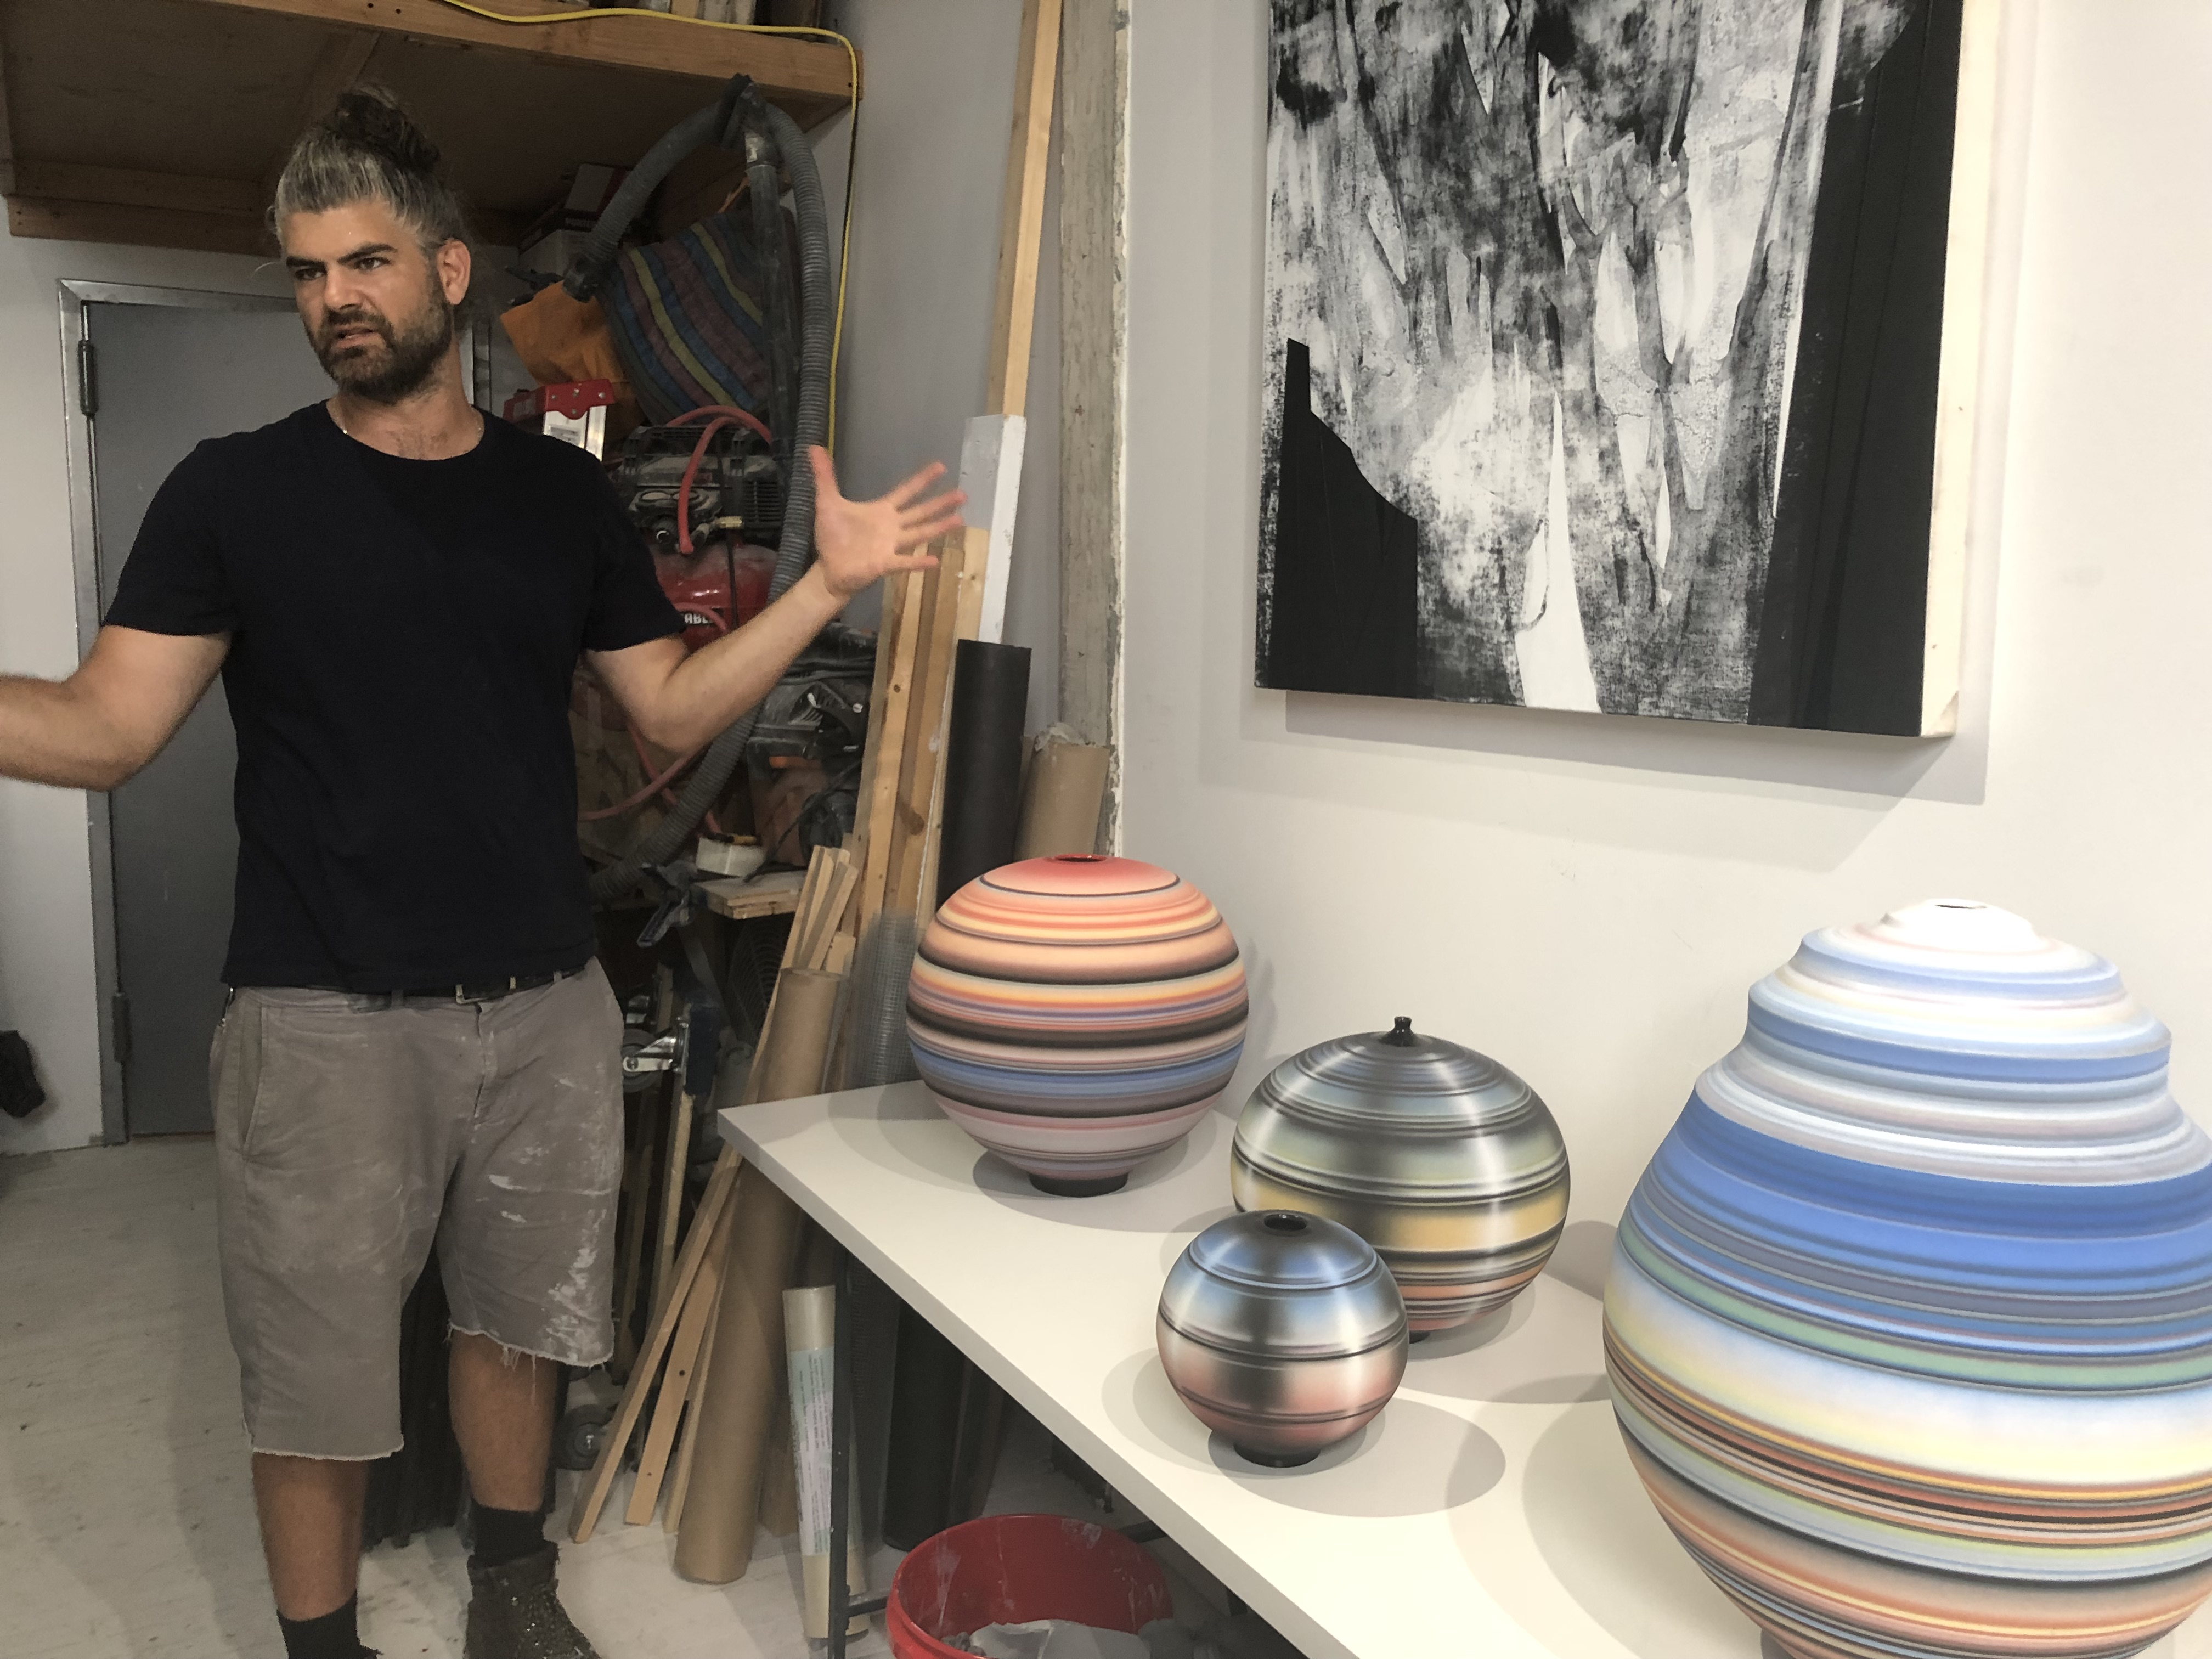 Artist Michael Dickey in his studio, showing ceramic sculptures and paintings